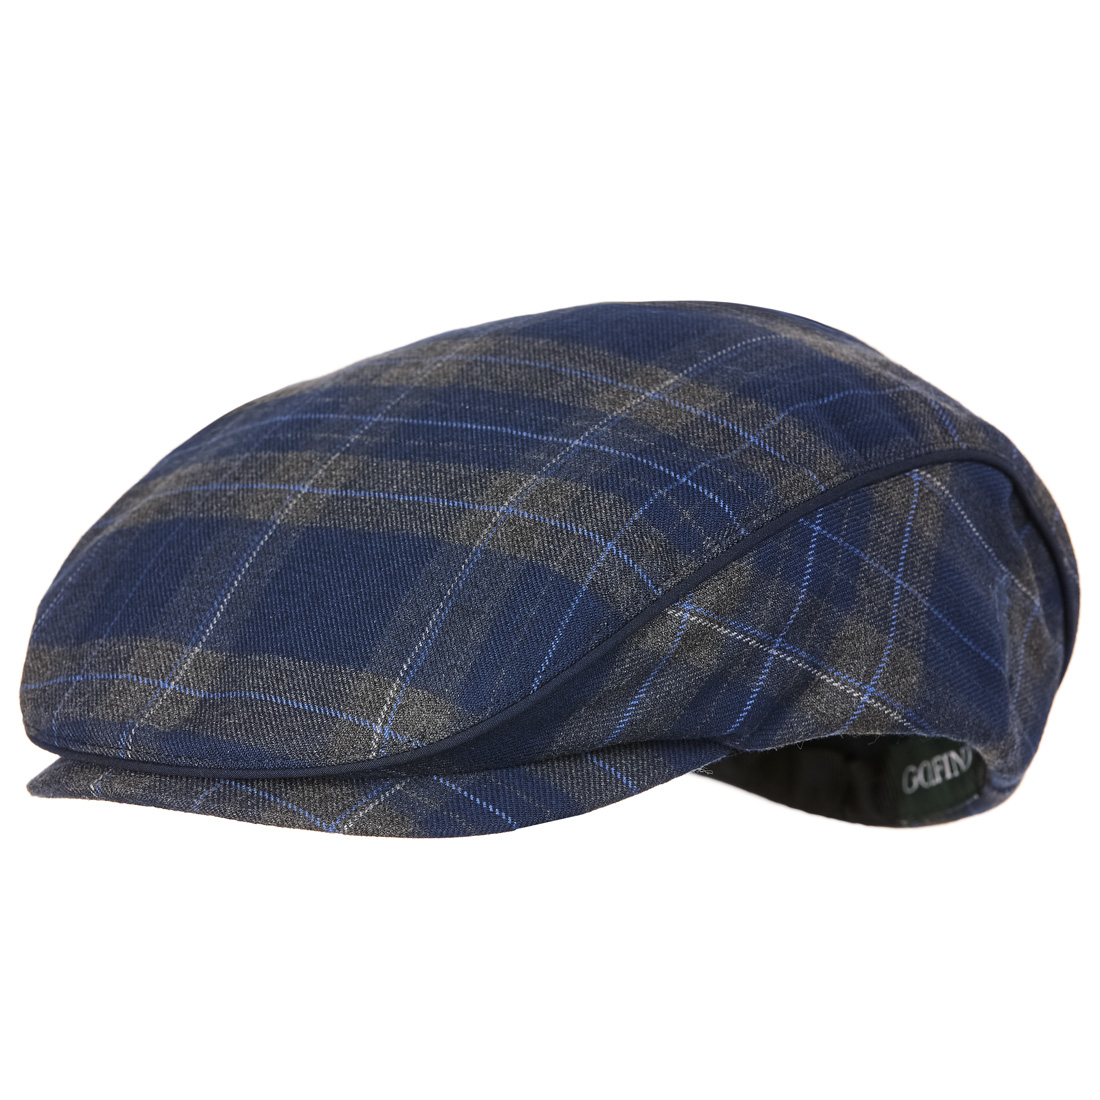 9cb18378d3b GOLFINO Checked cold protection golf cap with soft fleece lining ...